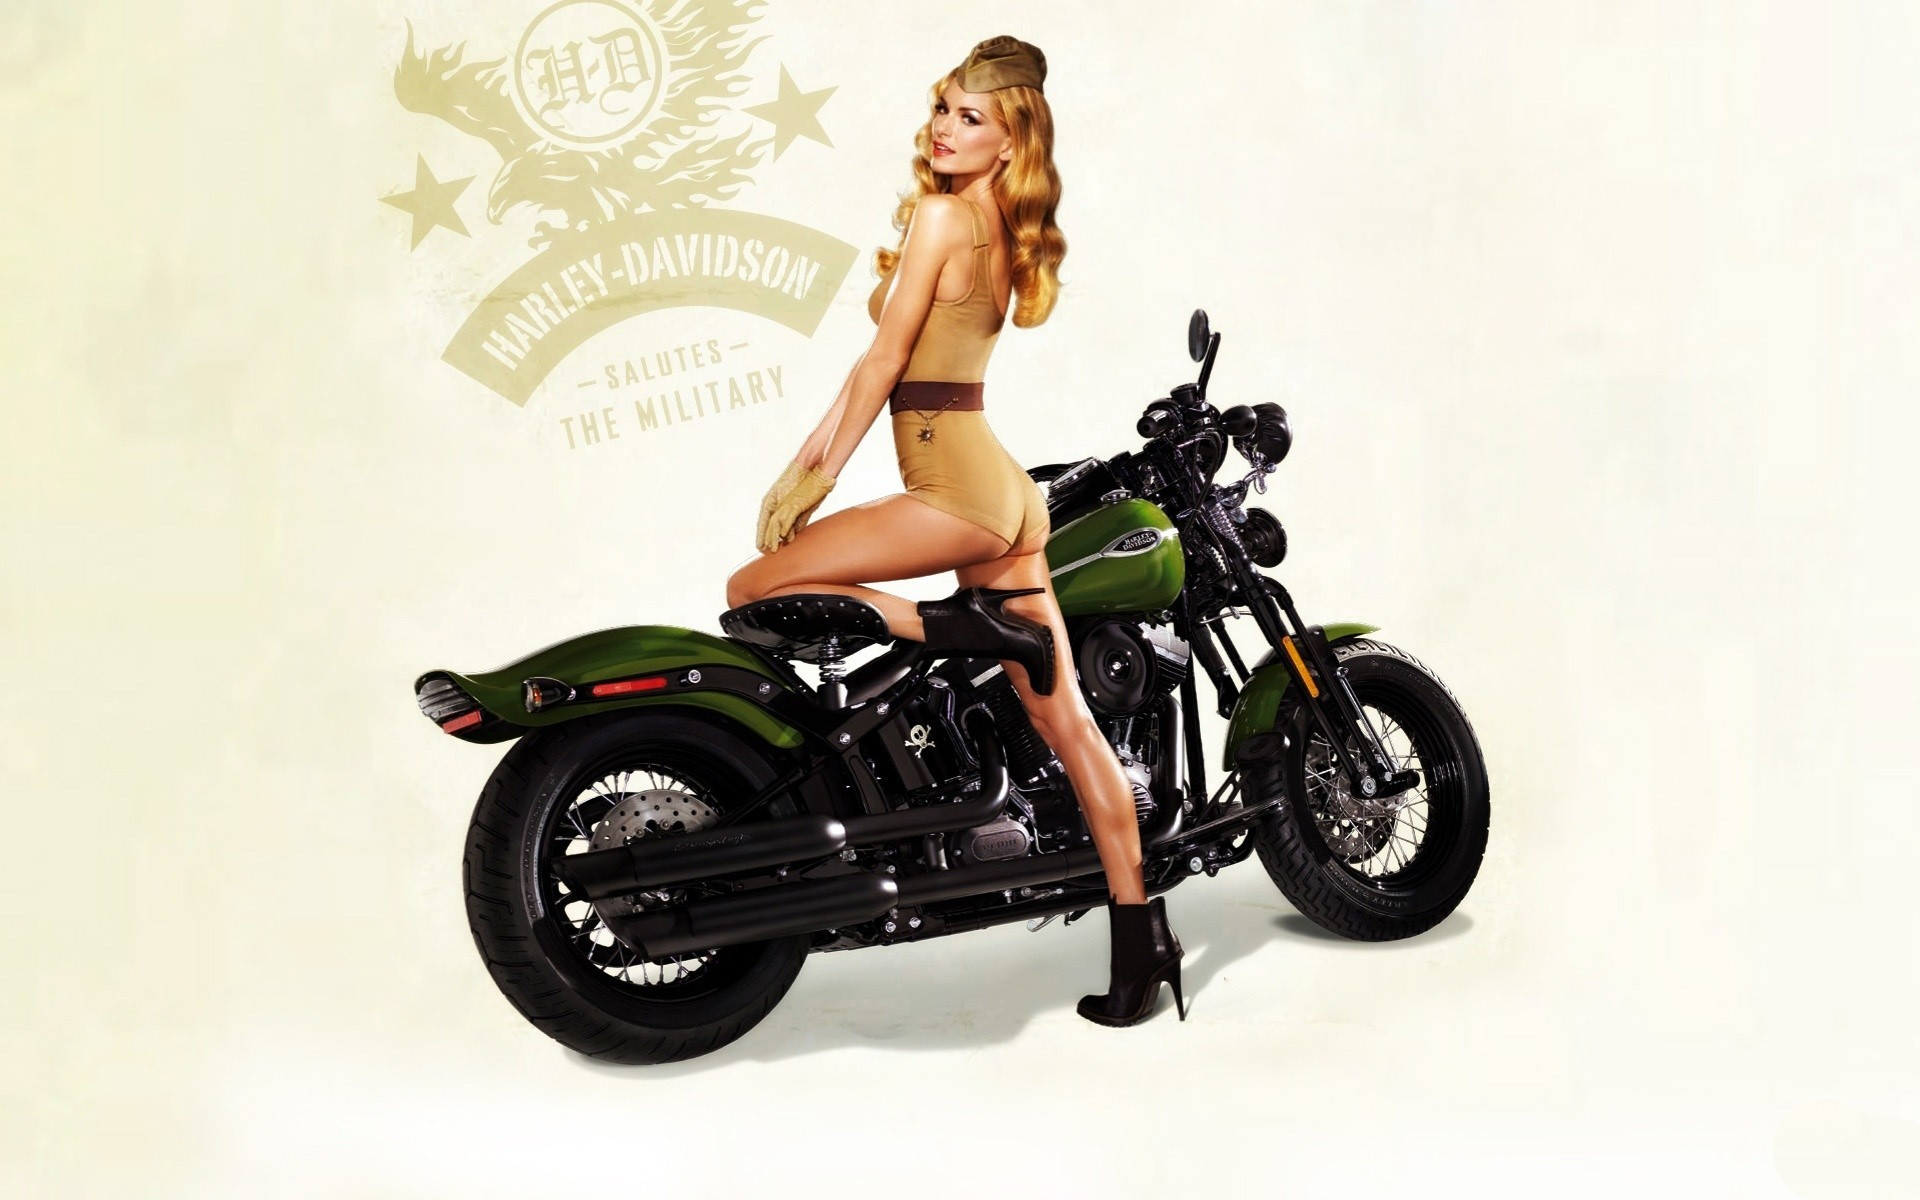 1920x1200 blondes women motorbike vintage pinup harley davidson army girls   wallpaper  of-PhotoBoats.